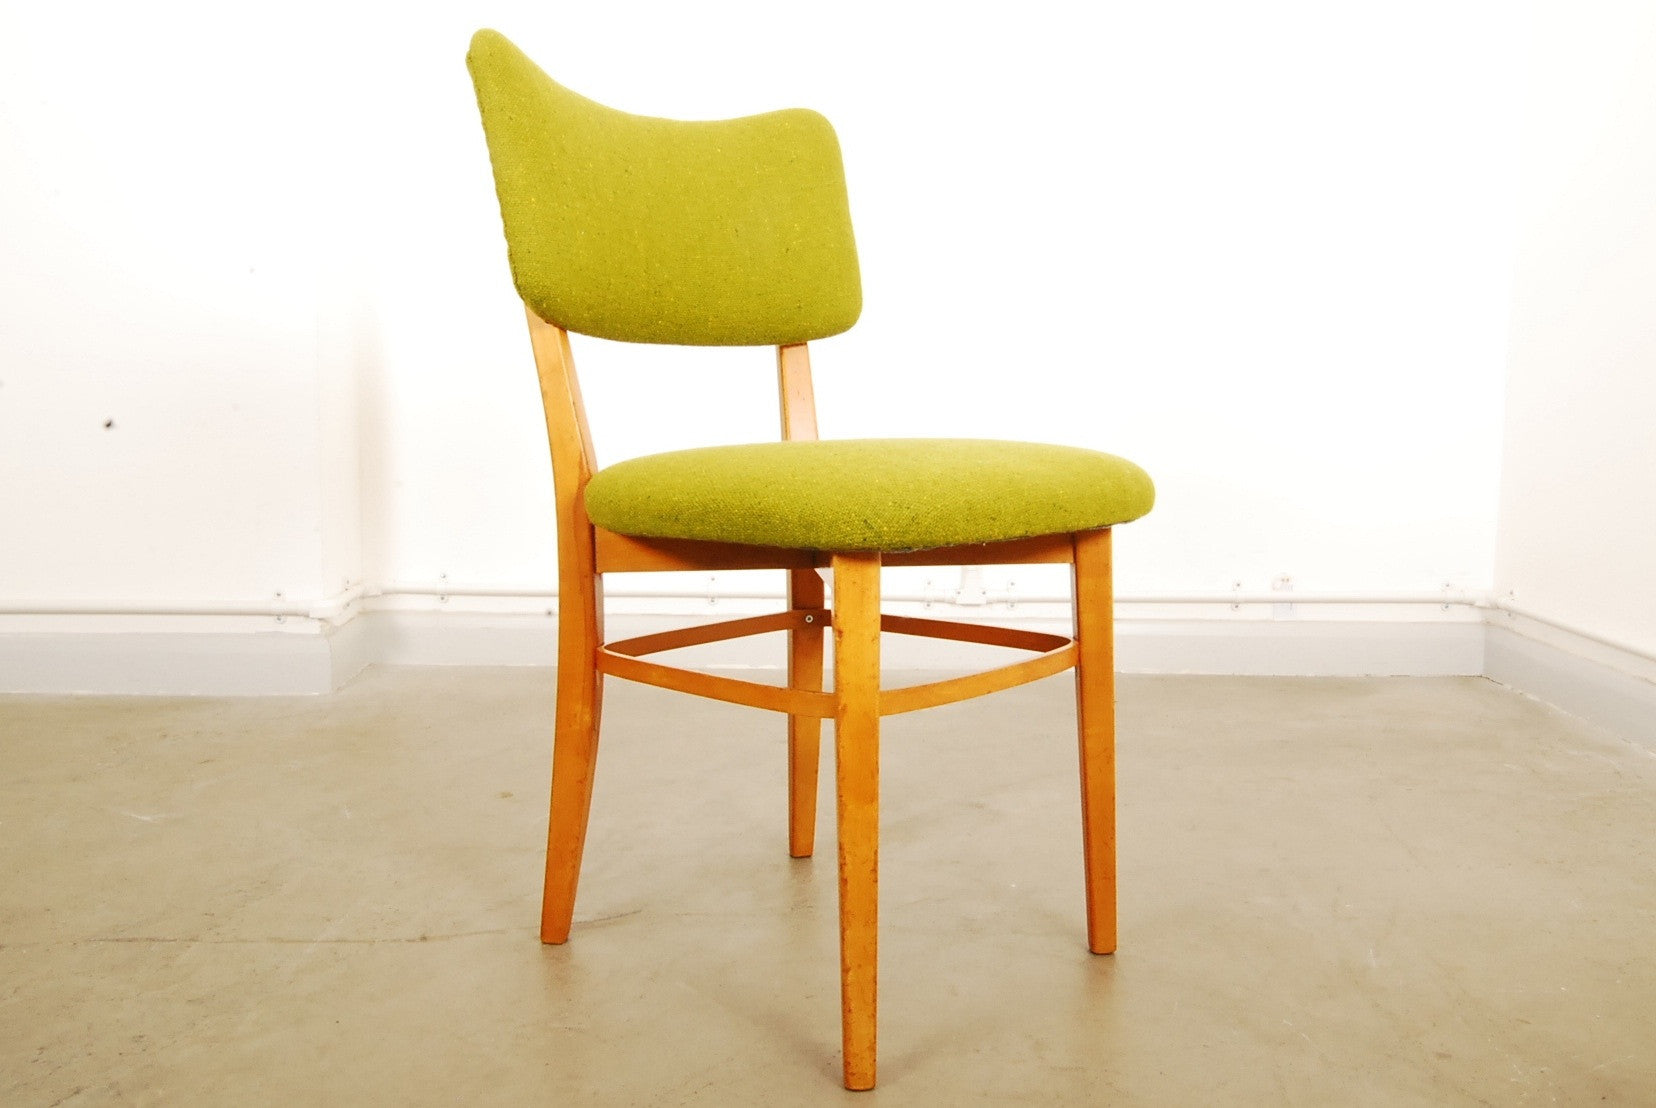 Desk / dining chair by Carl Malmsten